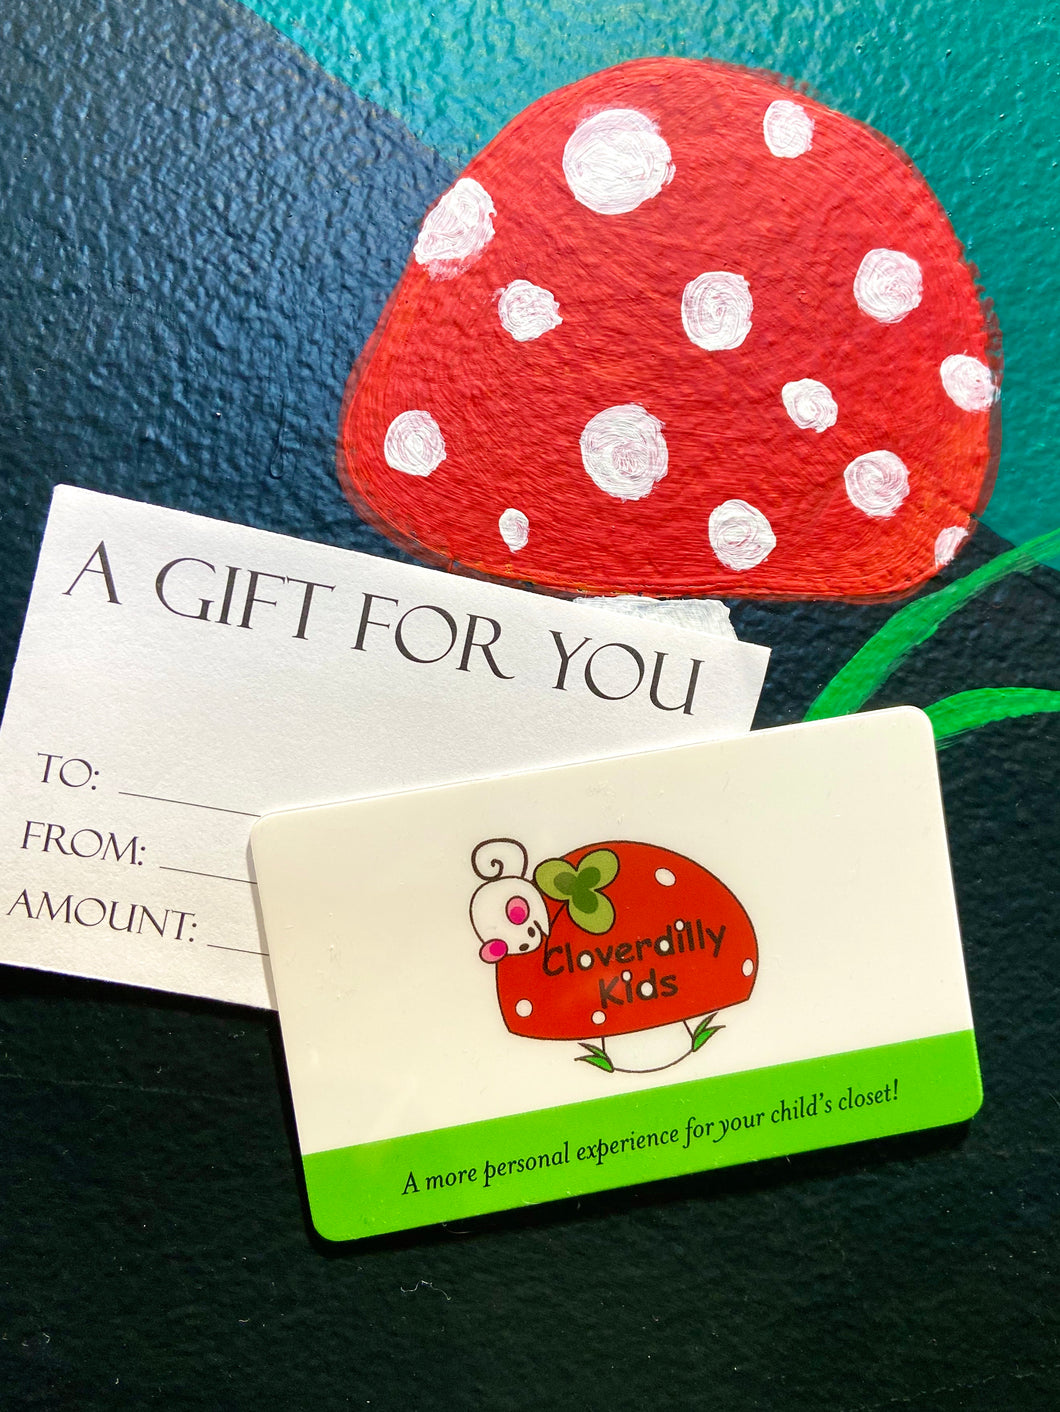 Cloverdilly Kids Gift Card